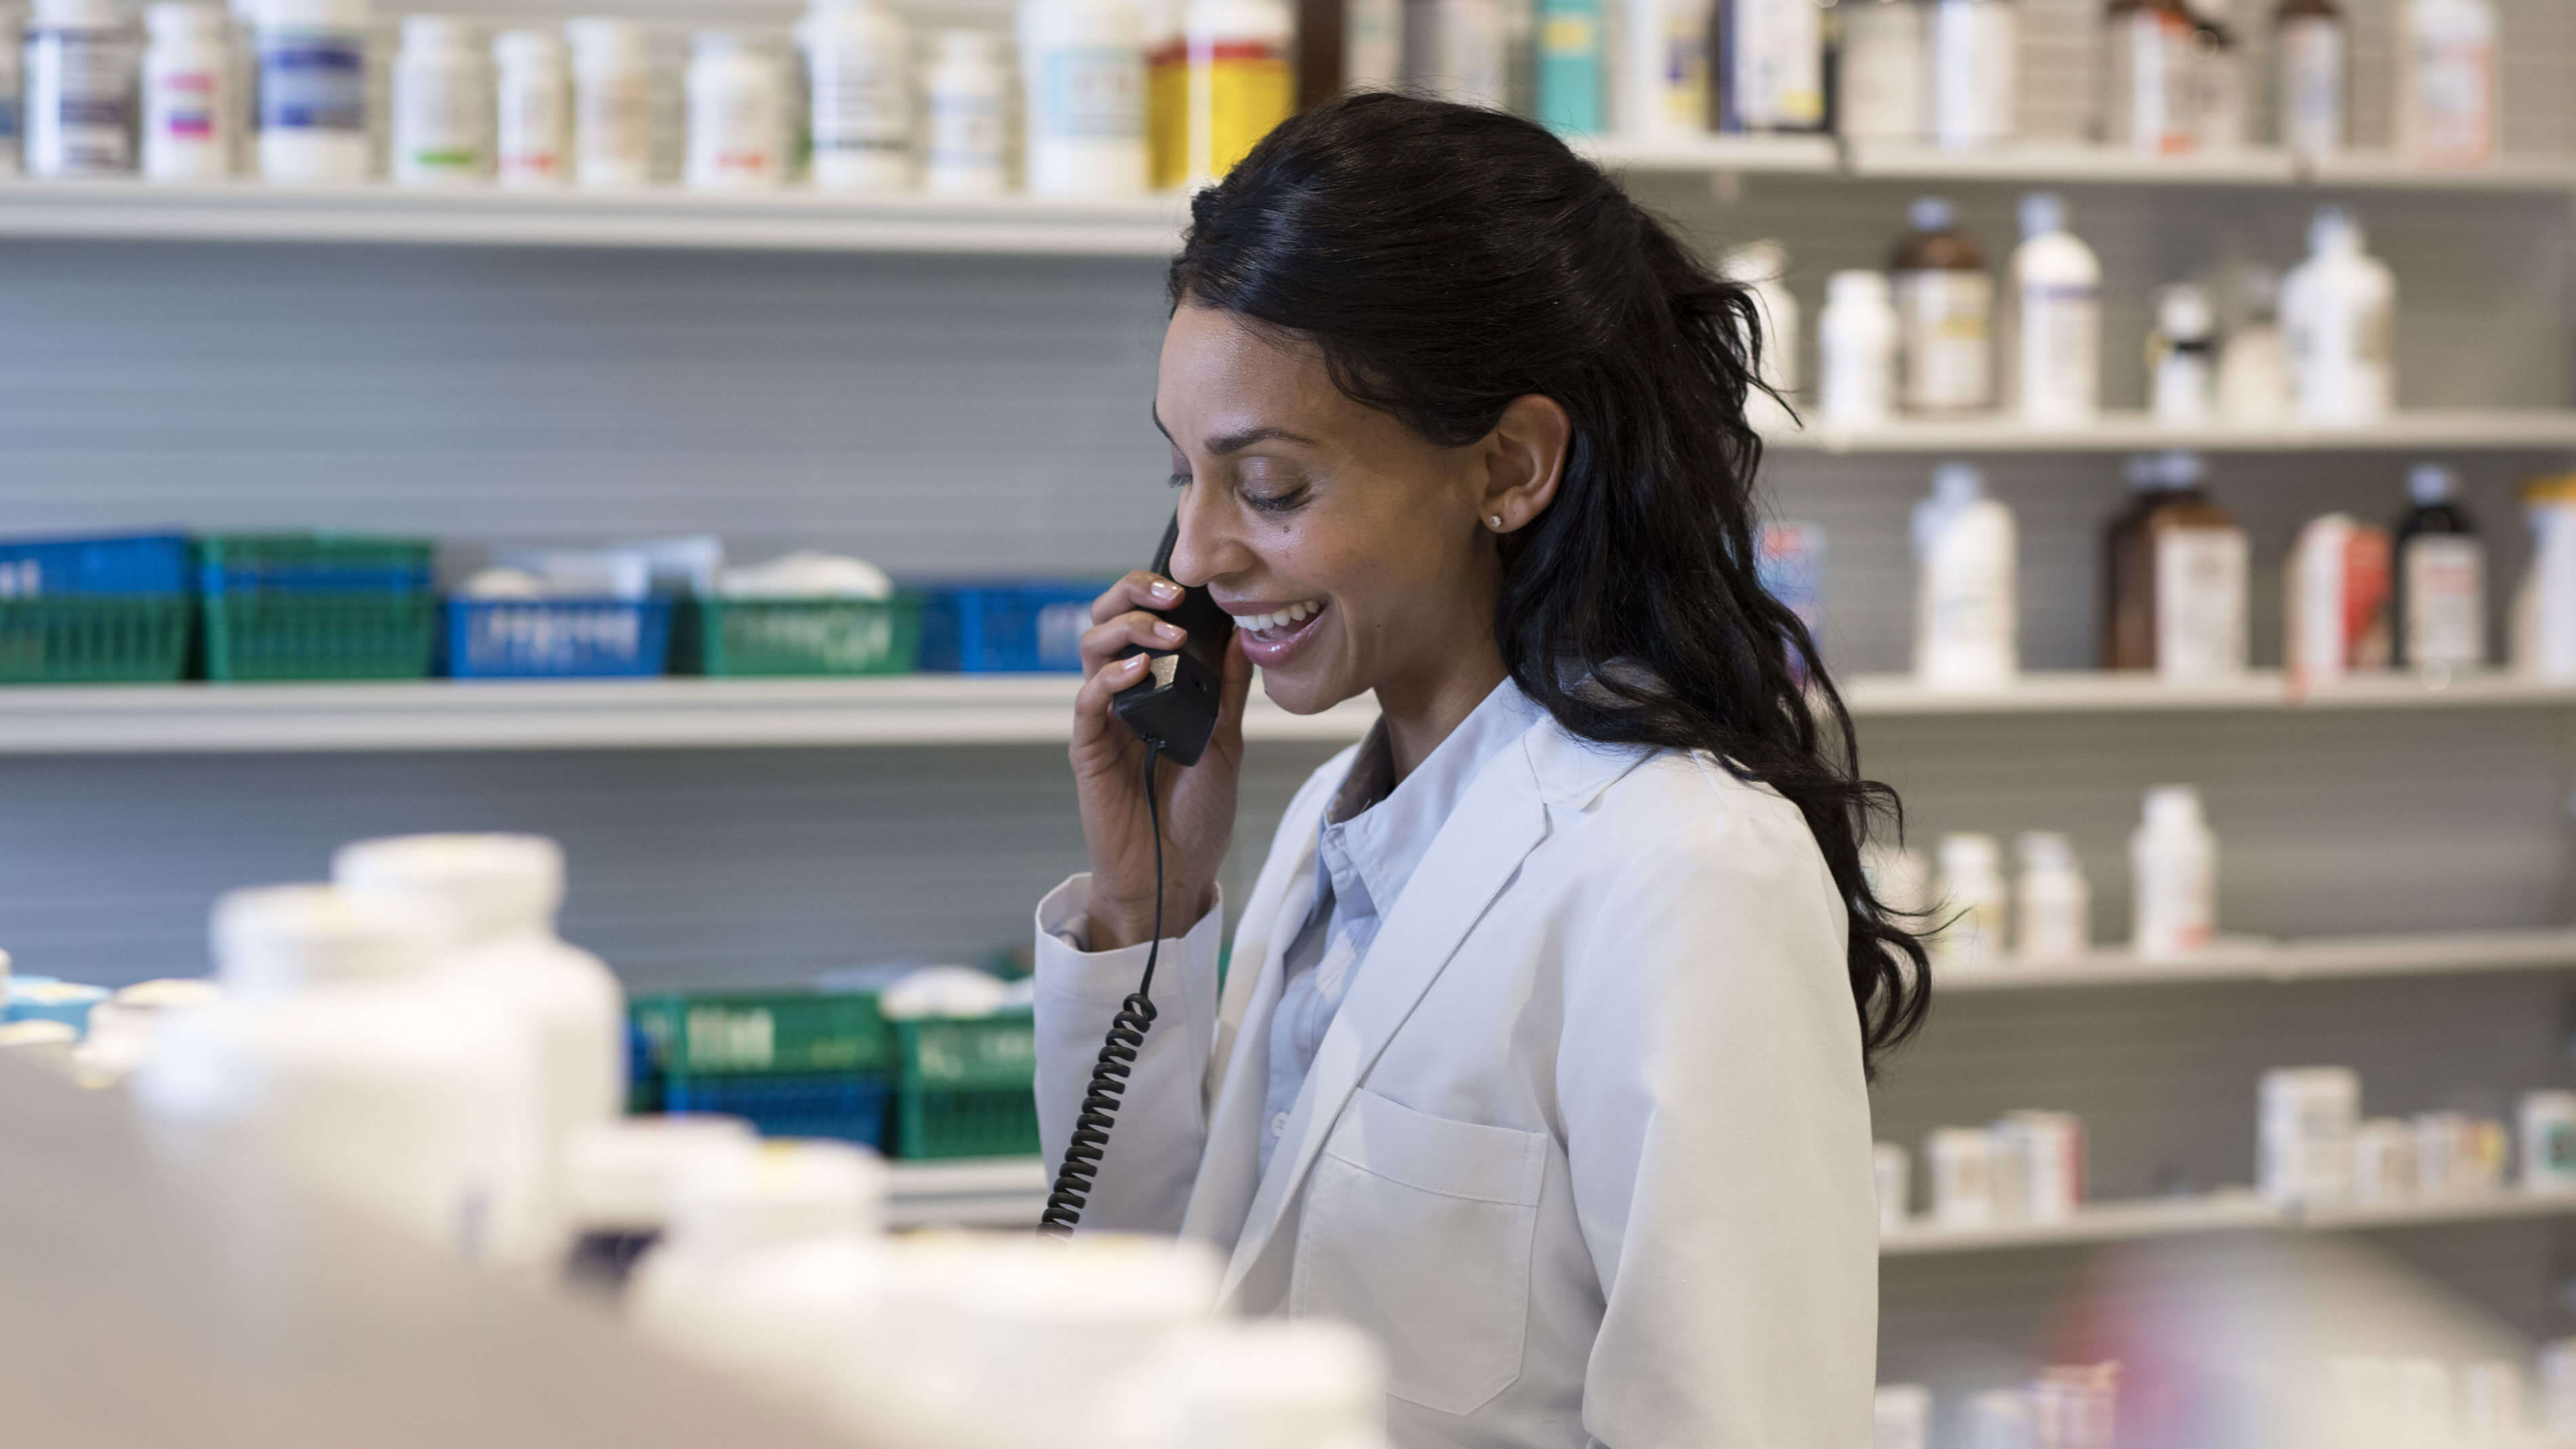 Smiling woman pharmacist talking on the phone.